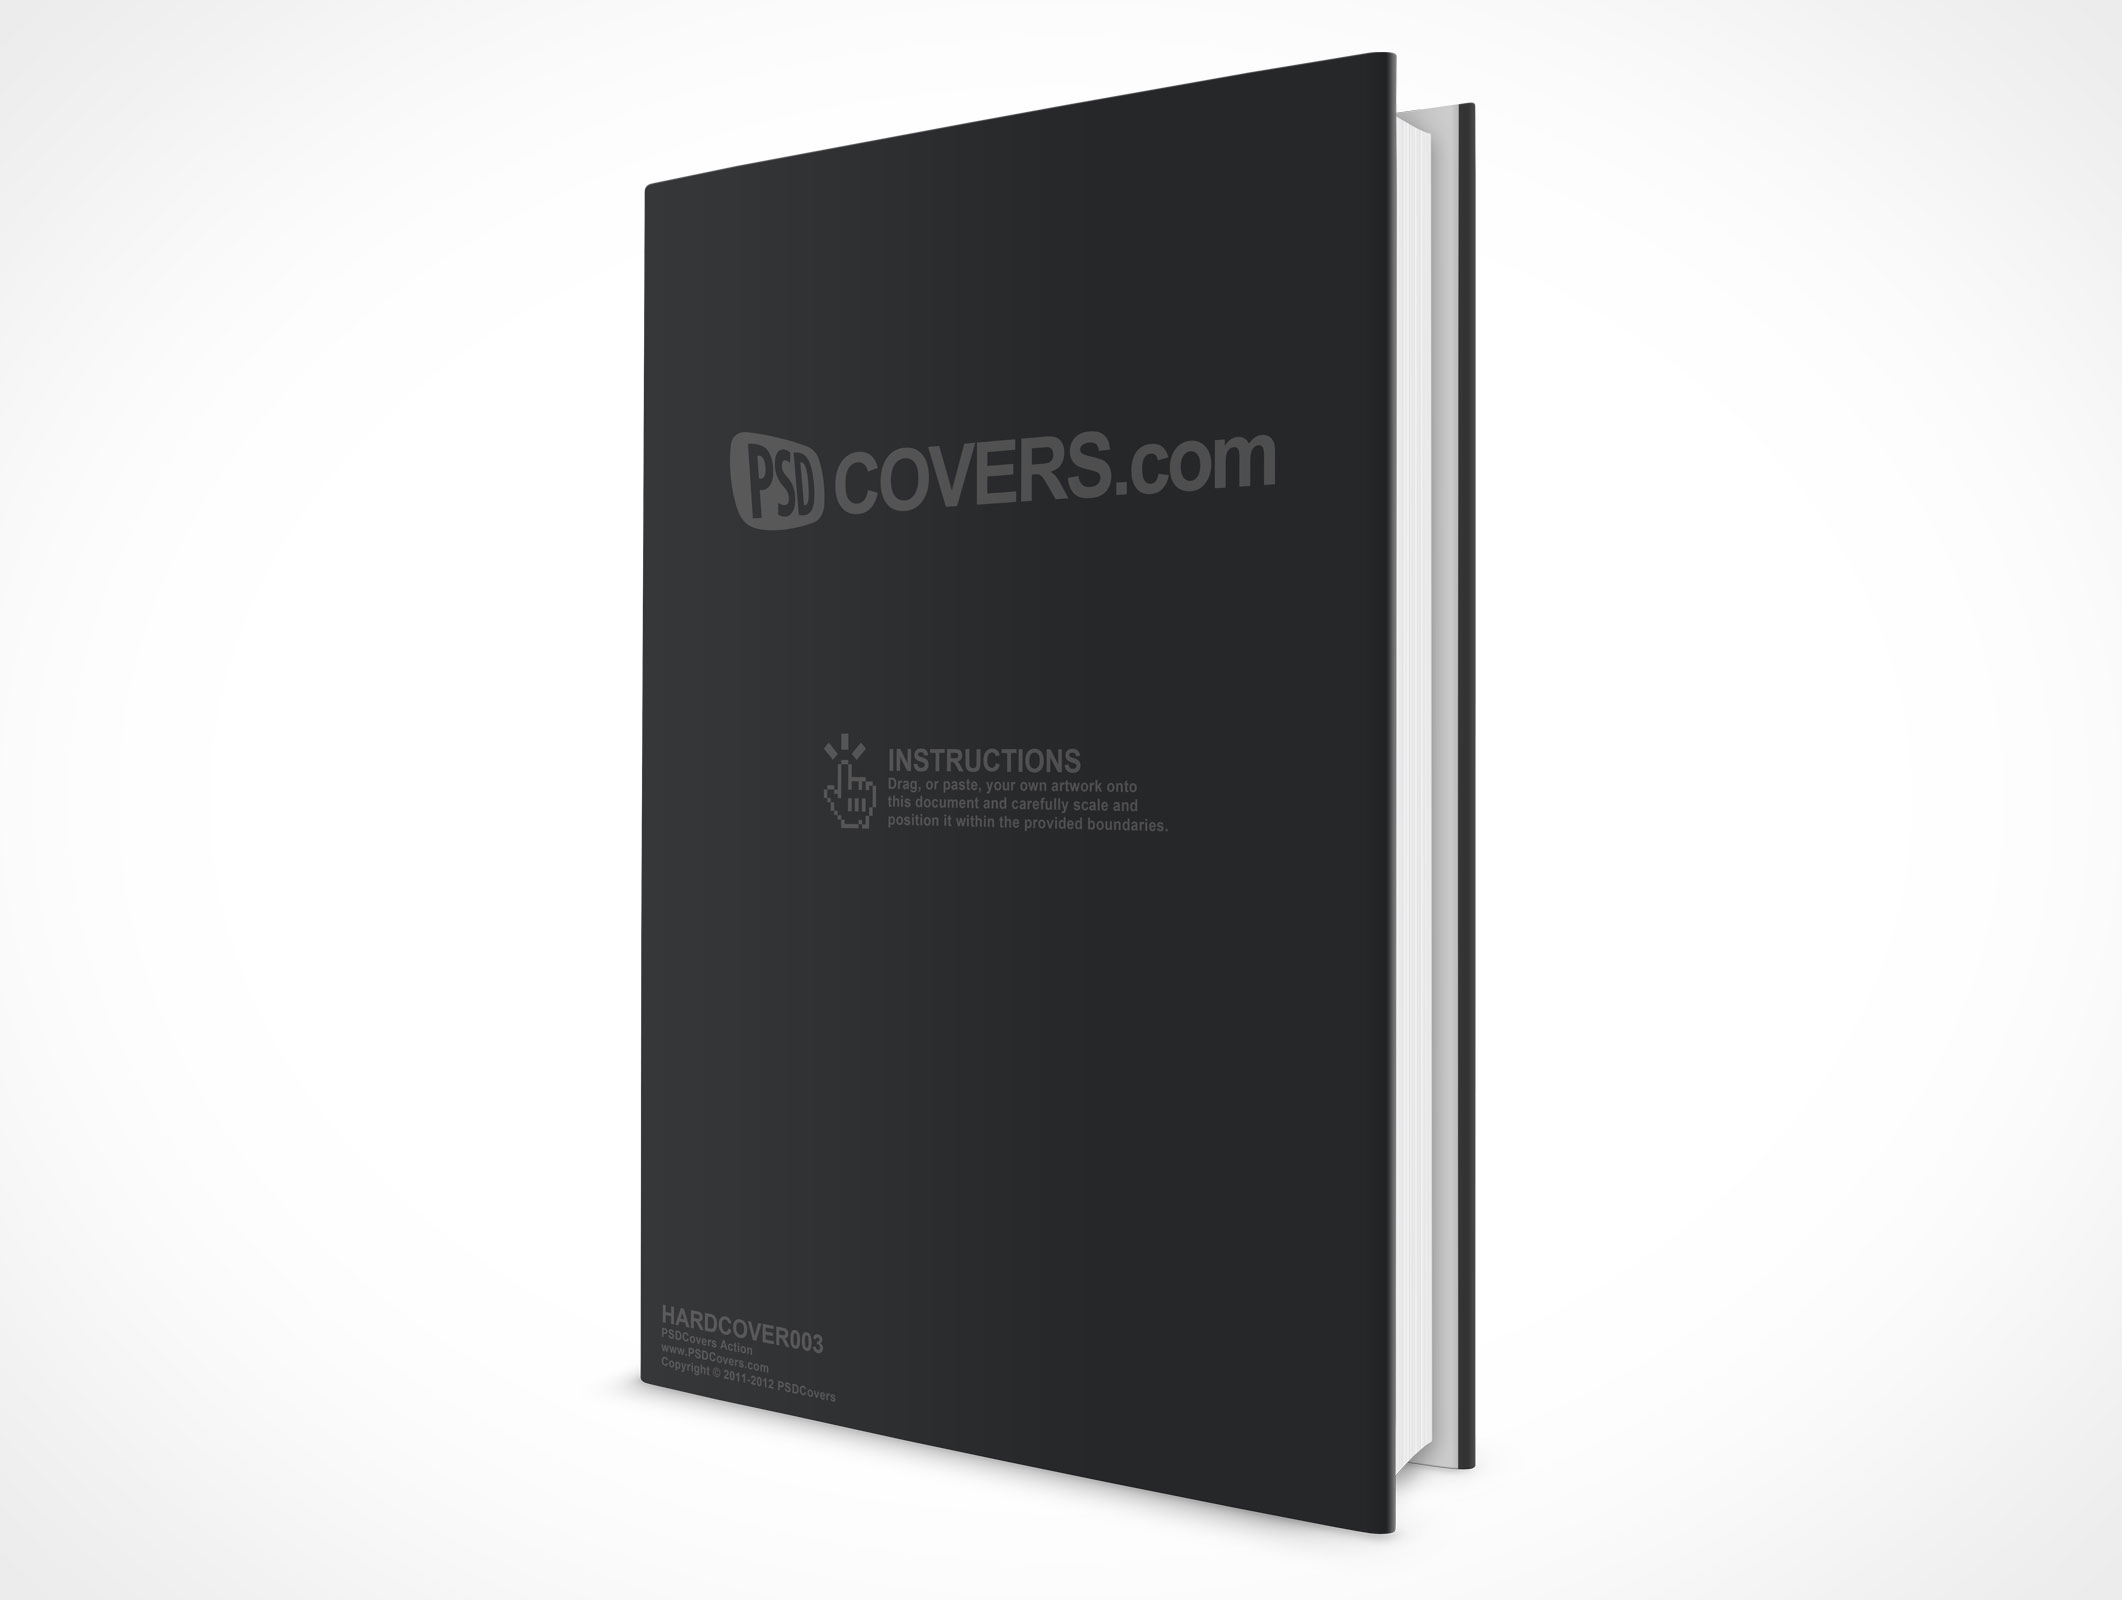 Hard Cover Book And Paper Back ~ Hardcover market your psd mockups for